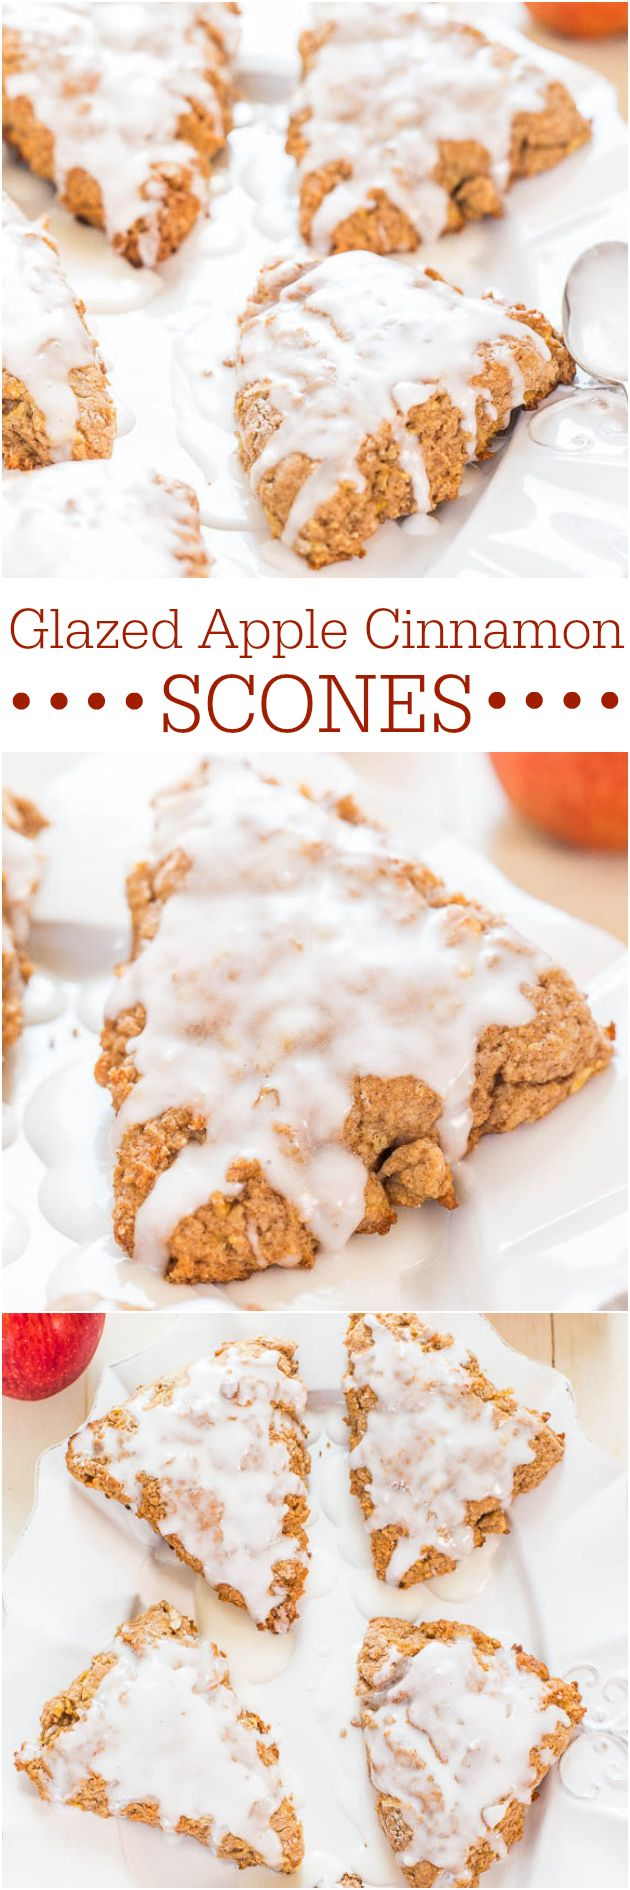 Glazed Apple Cinnamon Scones - Finally, scones that arent dry! The perfect fall comfort food packed with apples, cinnamon and that glaze!!